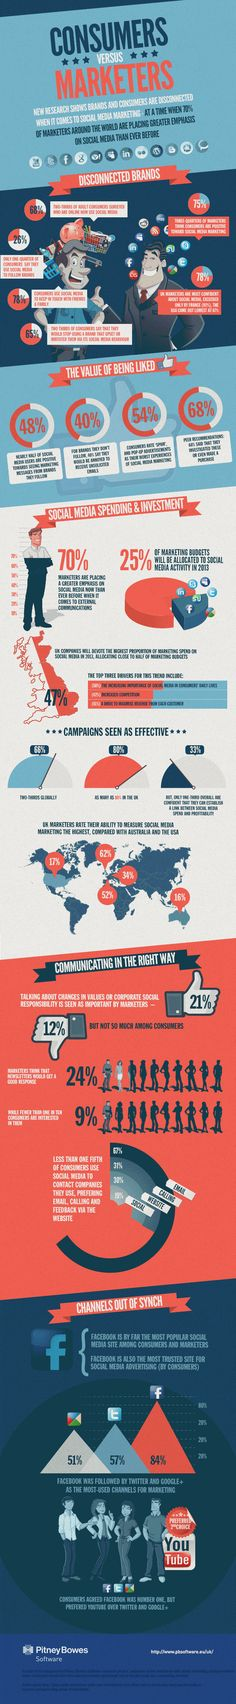 consumers-vs-marketers-infographic - My Social Agency